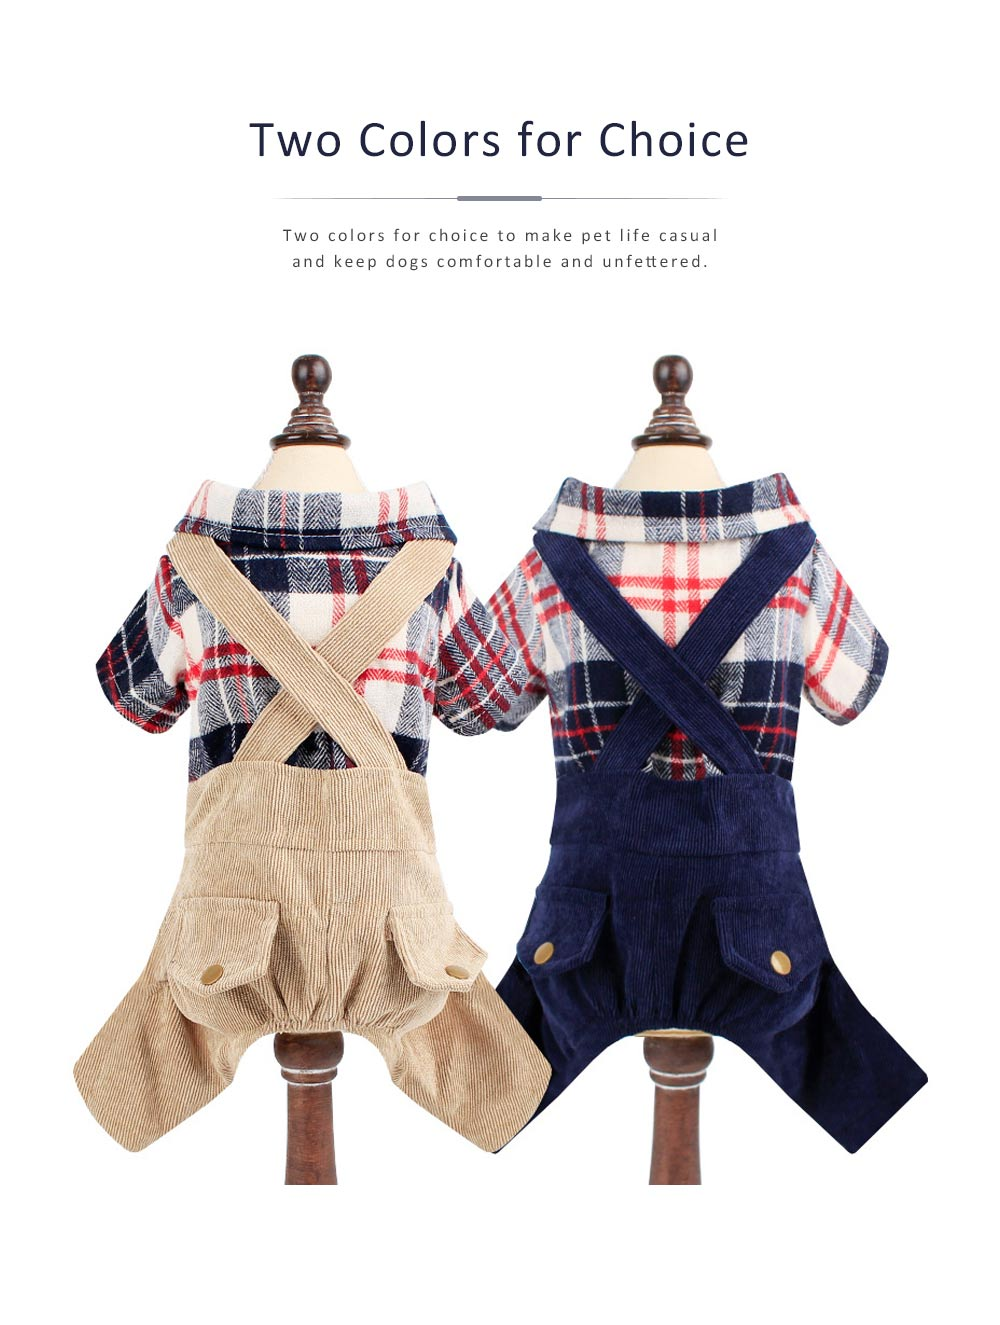 Bib Pants Check Corduroy Suspender Trousers, Casual Style Hawoo Trousers with Braces for Pets Stock Wholesale Pet Clothes 1